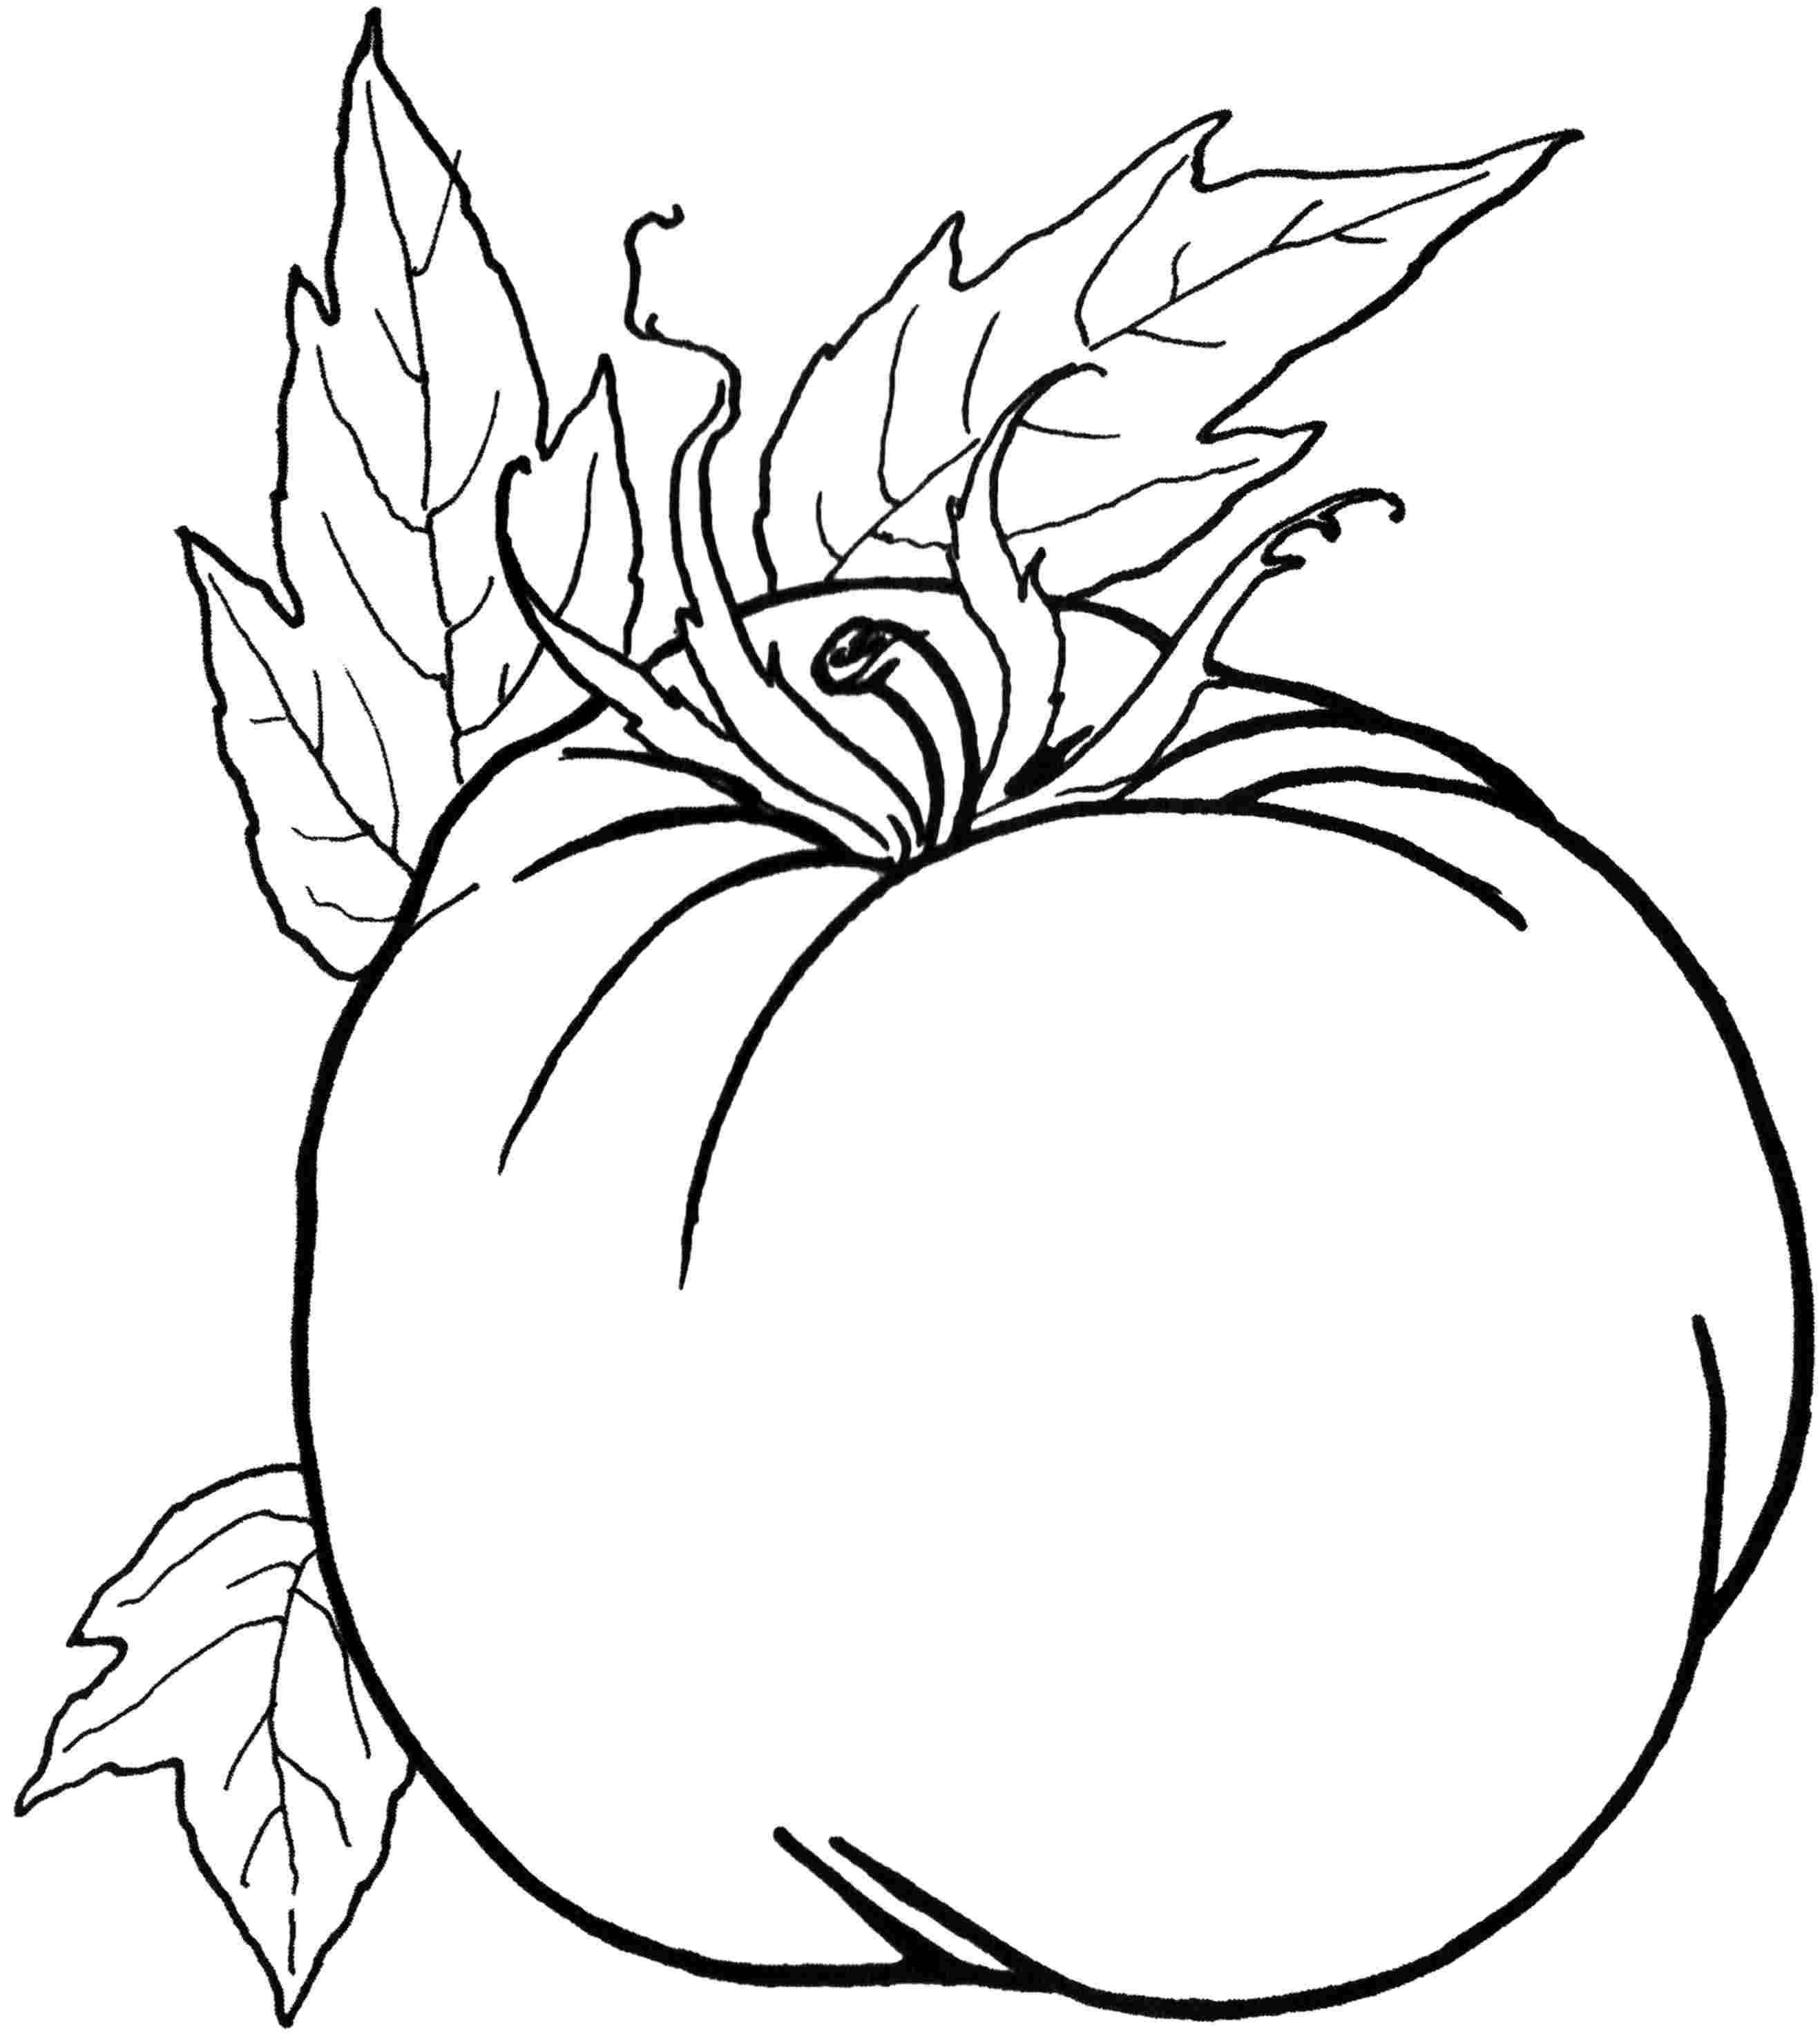 coloring sheets vegetables vegetable coloring pages best coloring pages for kids sheets vegetables coloring 1 1